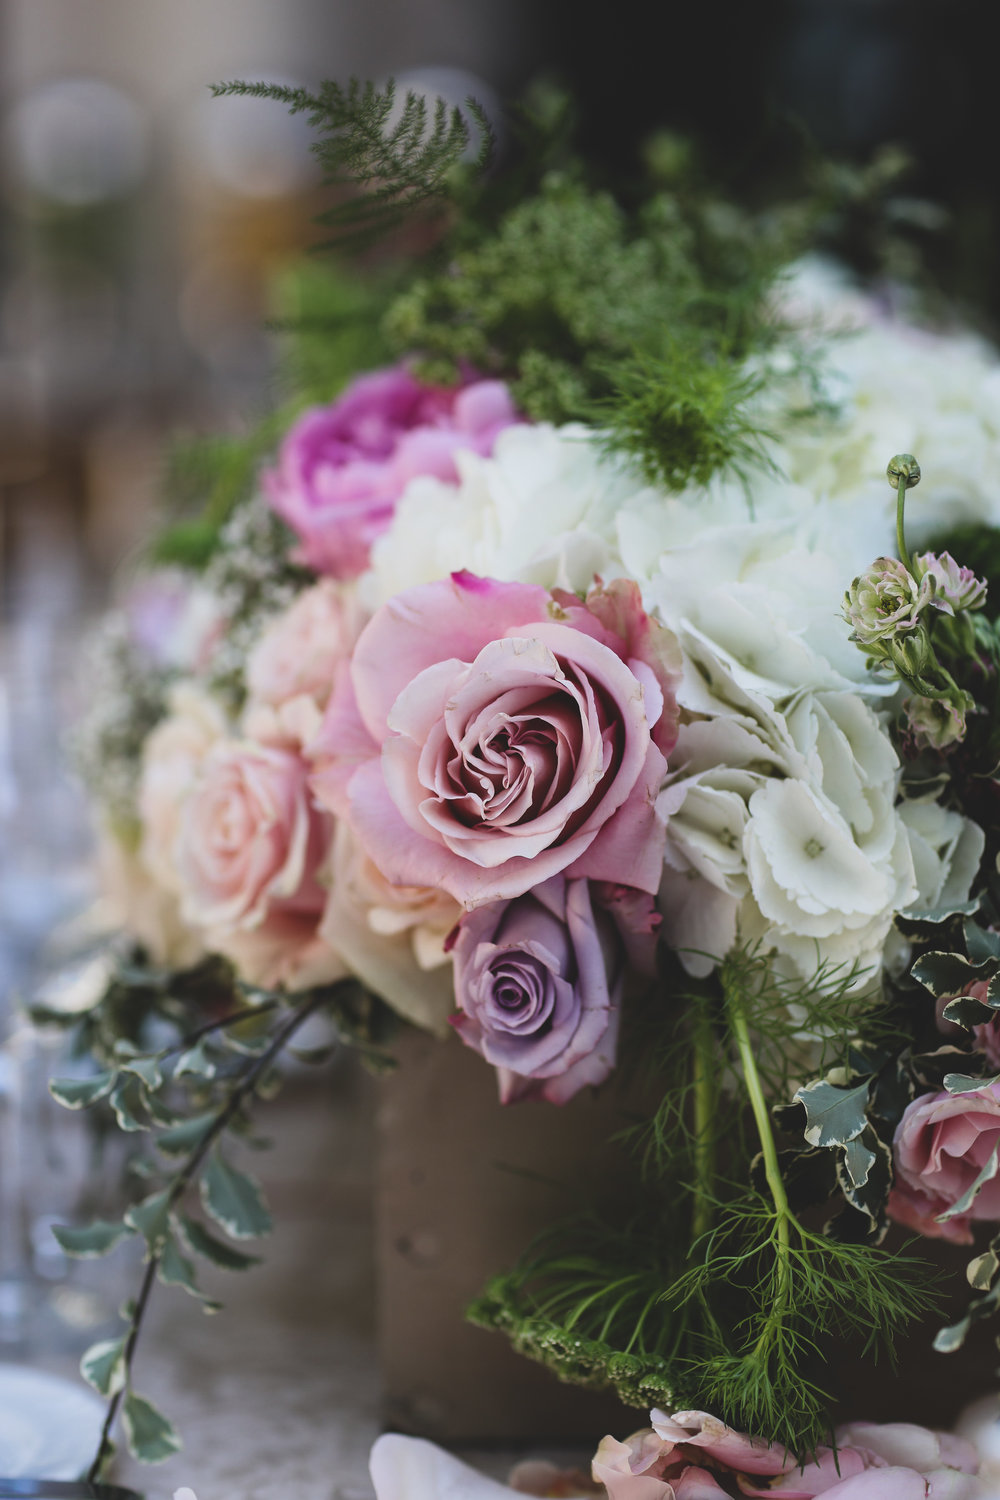 Lavender and pink roses make up this wedding floral arrangement done by Bleudog Floral at the beautiful Pelican Hill in Orange County.